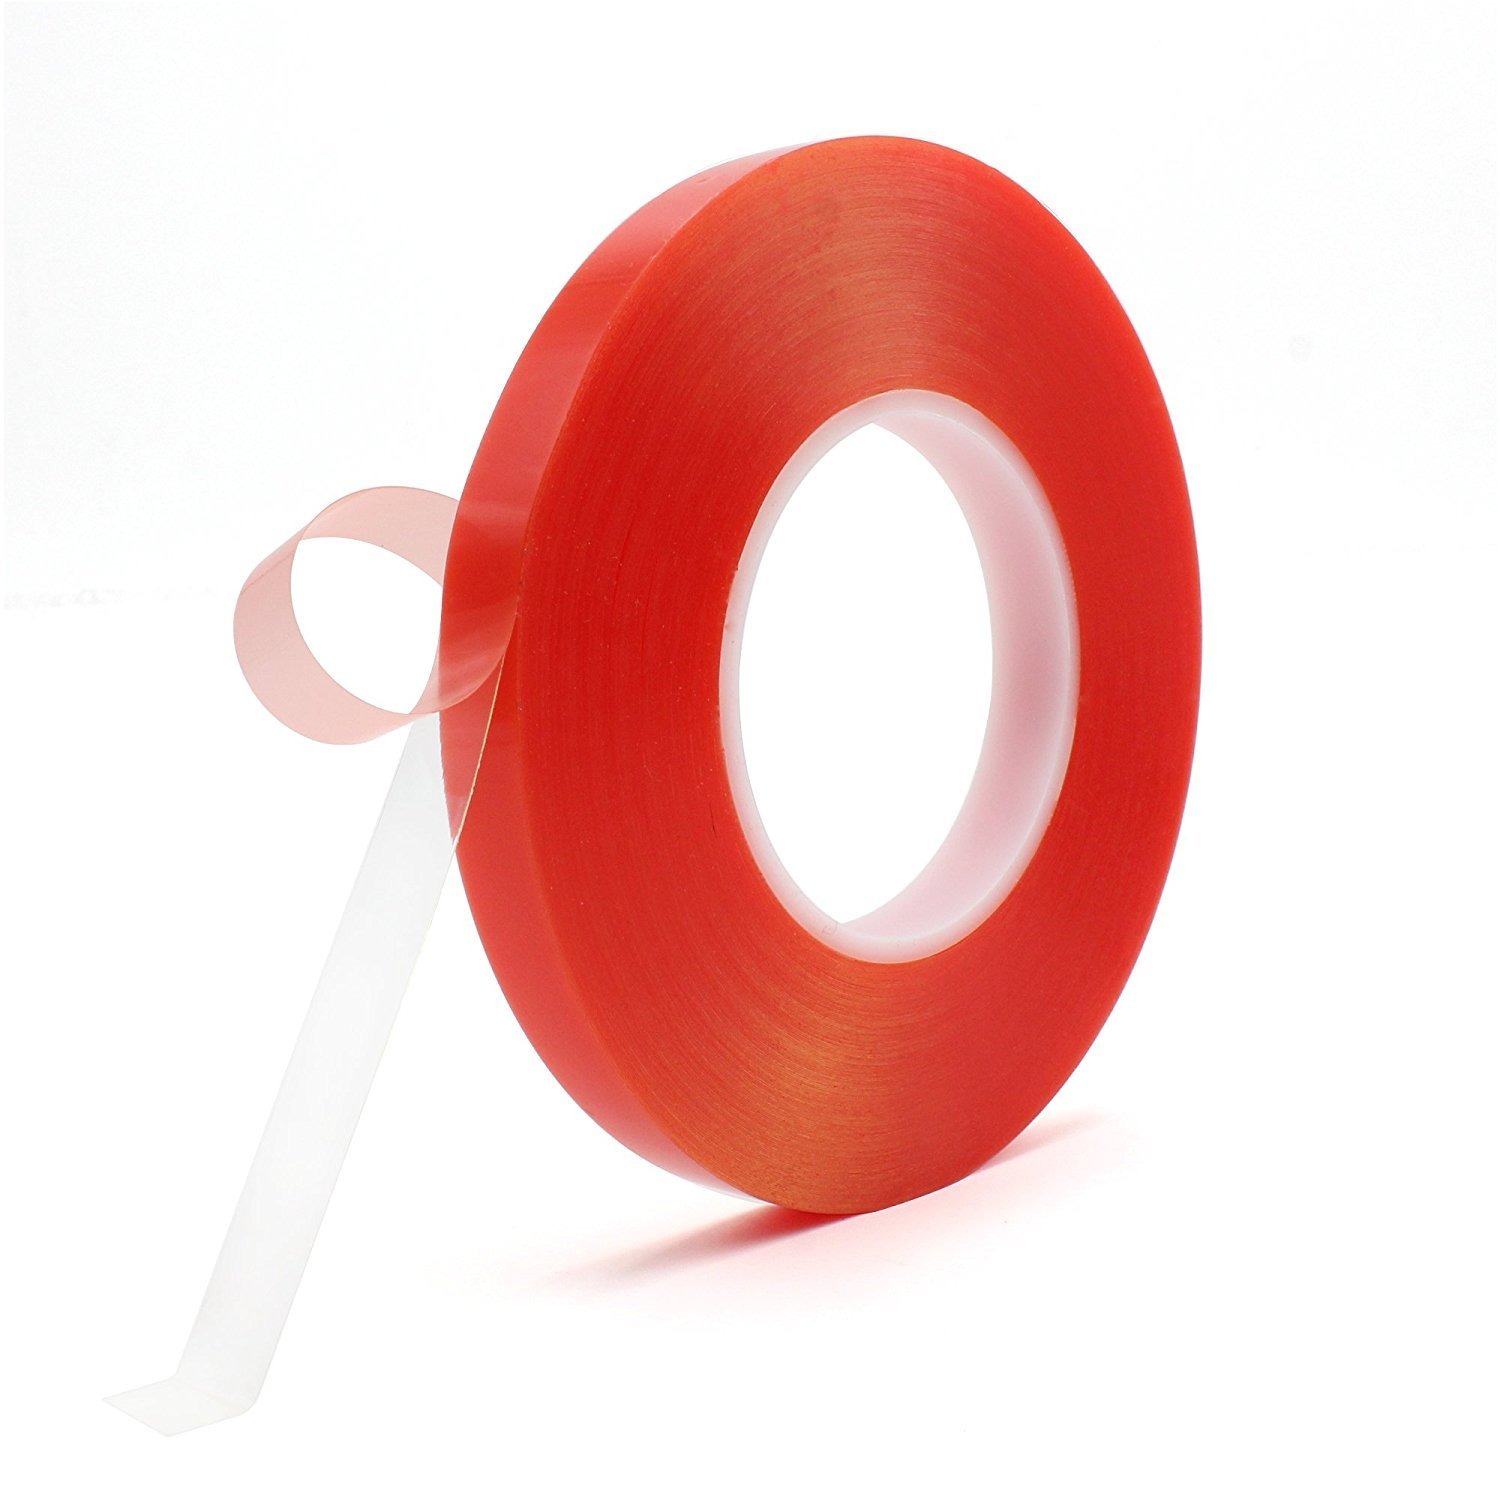 Two Sided Tape, Atemto 164ft PET Acrylic Double Sided Adhesive Sticker Tape 7.8mil Clear Tape Weatherproof Heavy Duty Heat Resistance Glue Ultra Strength Industrial Outdoor Tape (10mm)